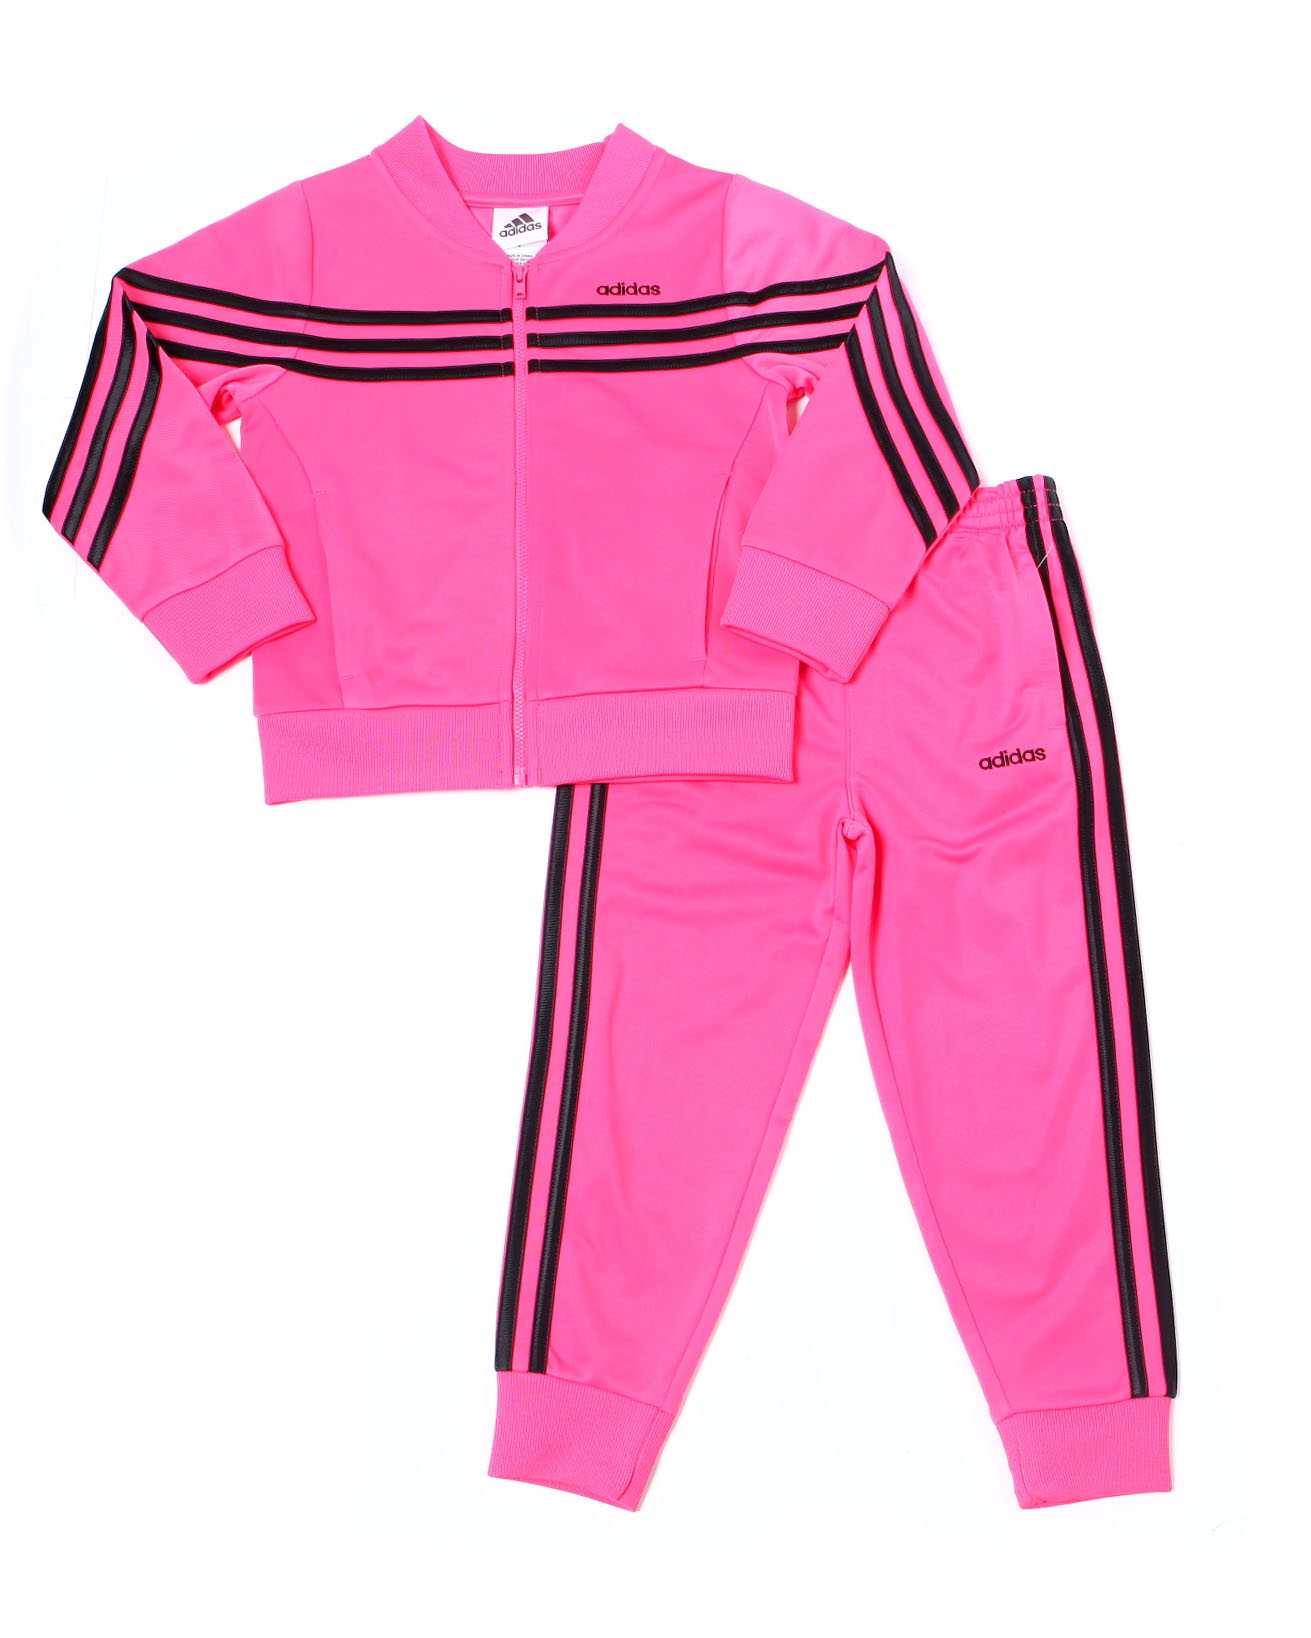 04521b0847 Buy Linear Tricot Jacket Set (4-6X) Girls Sets from Adidas. Find ...